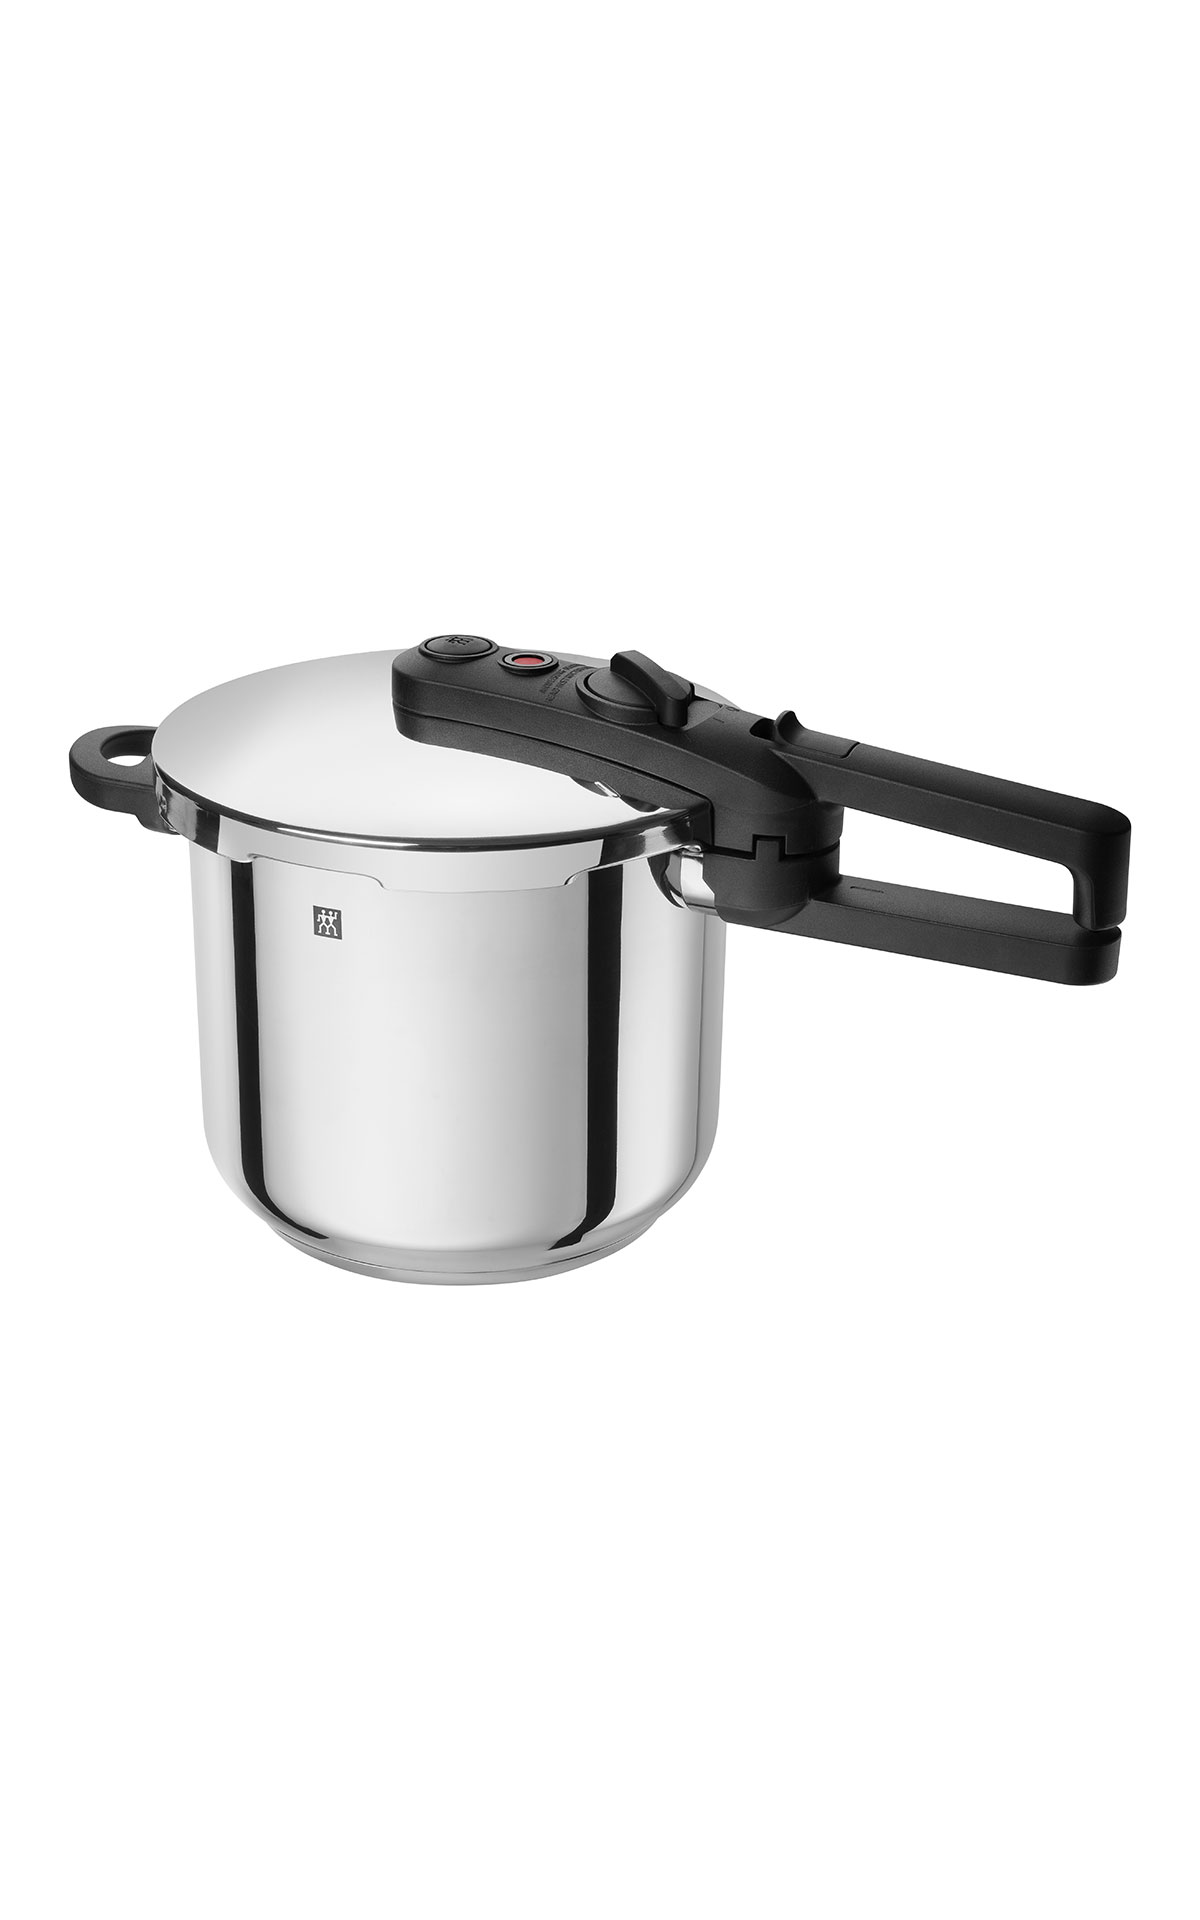 Zwilling Pressure cooker from Bicester Village